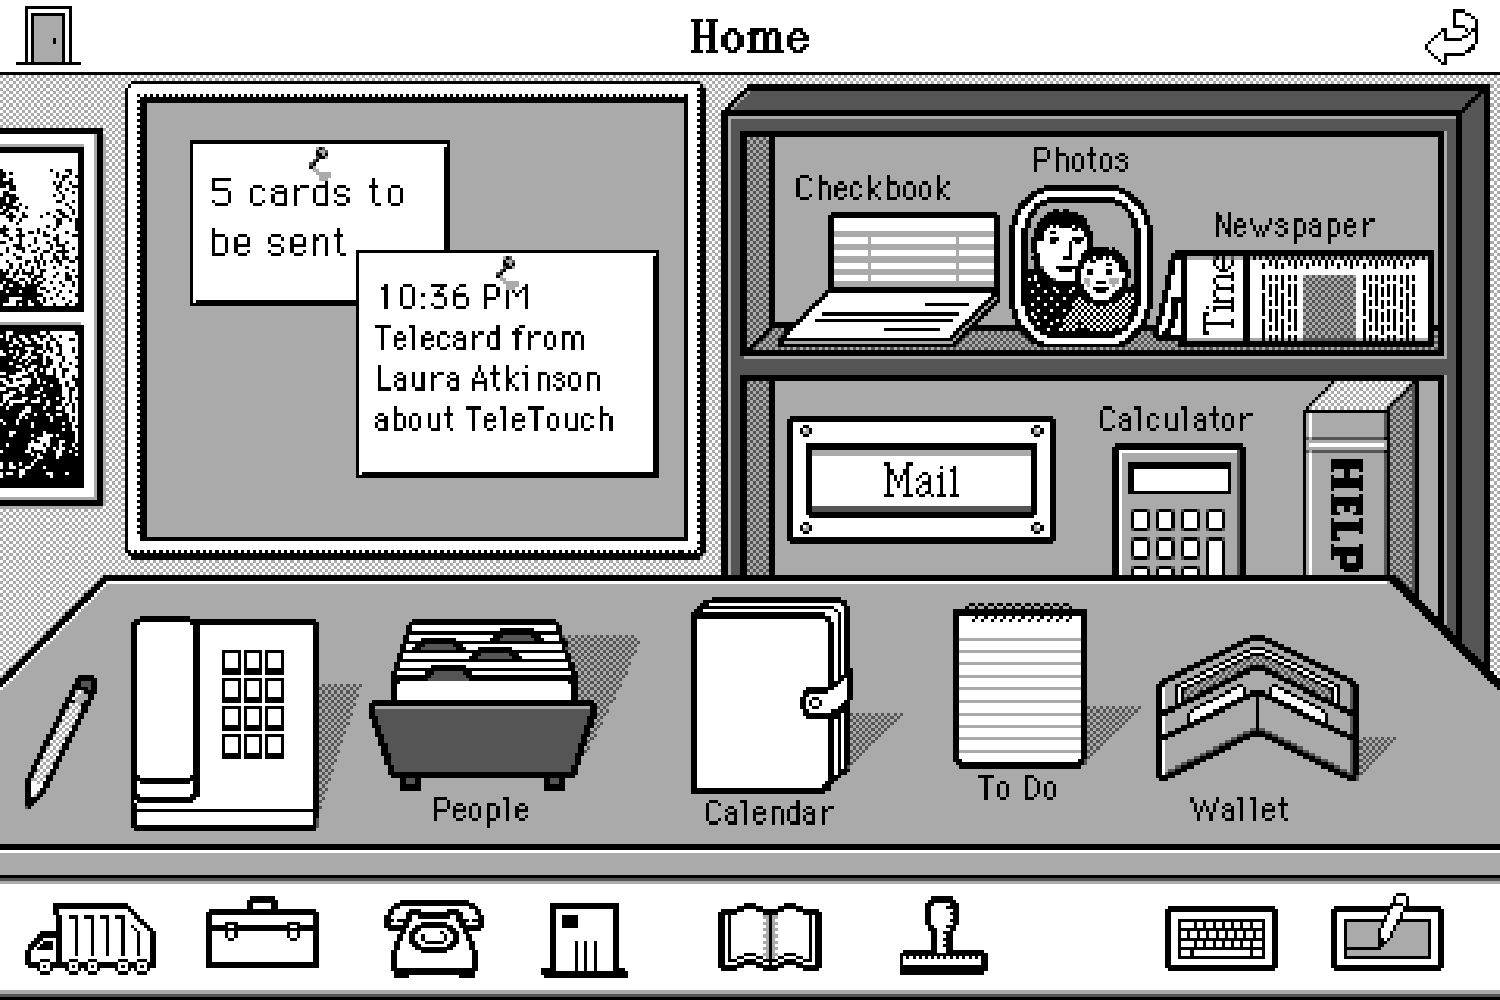 A grayscale 8-bit illustration of a desk with icons and all items labeled